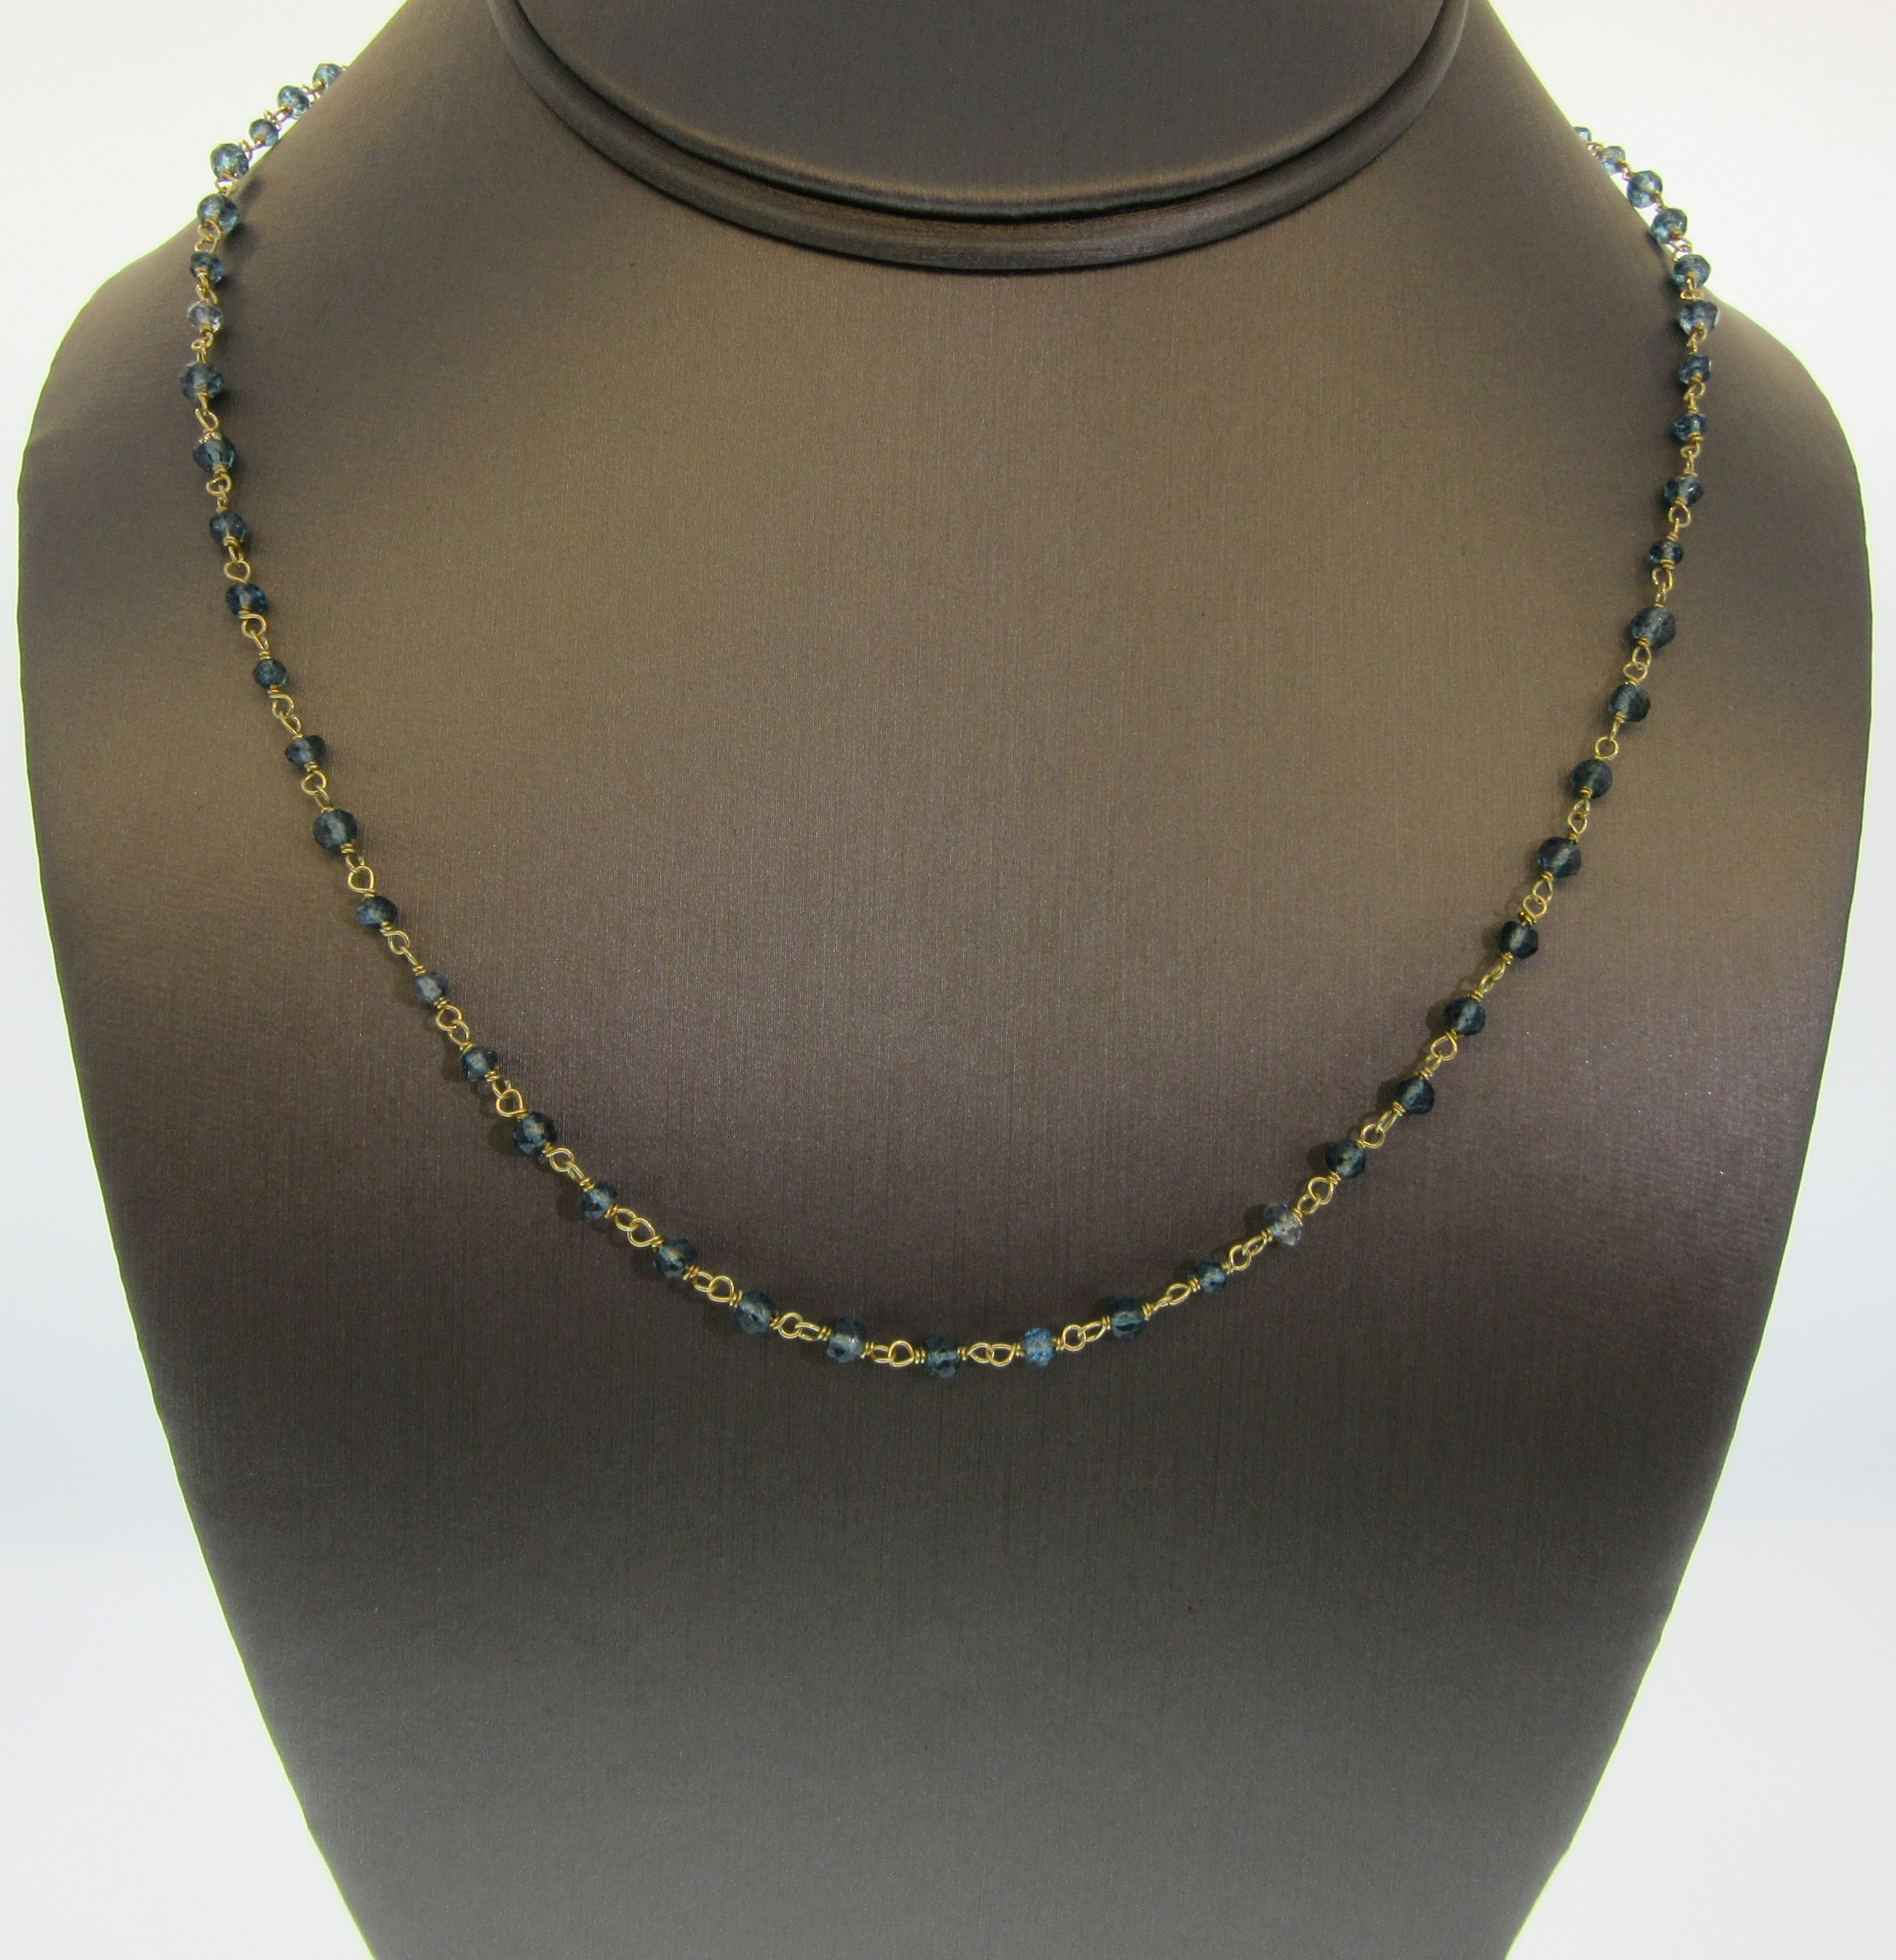 Rough Cut Blue Topaz by the Yard Necklace